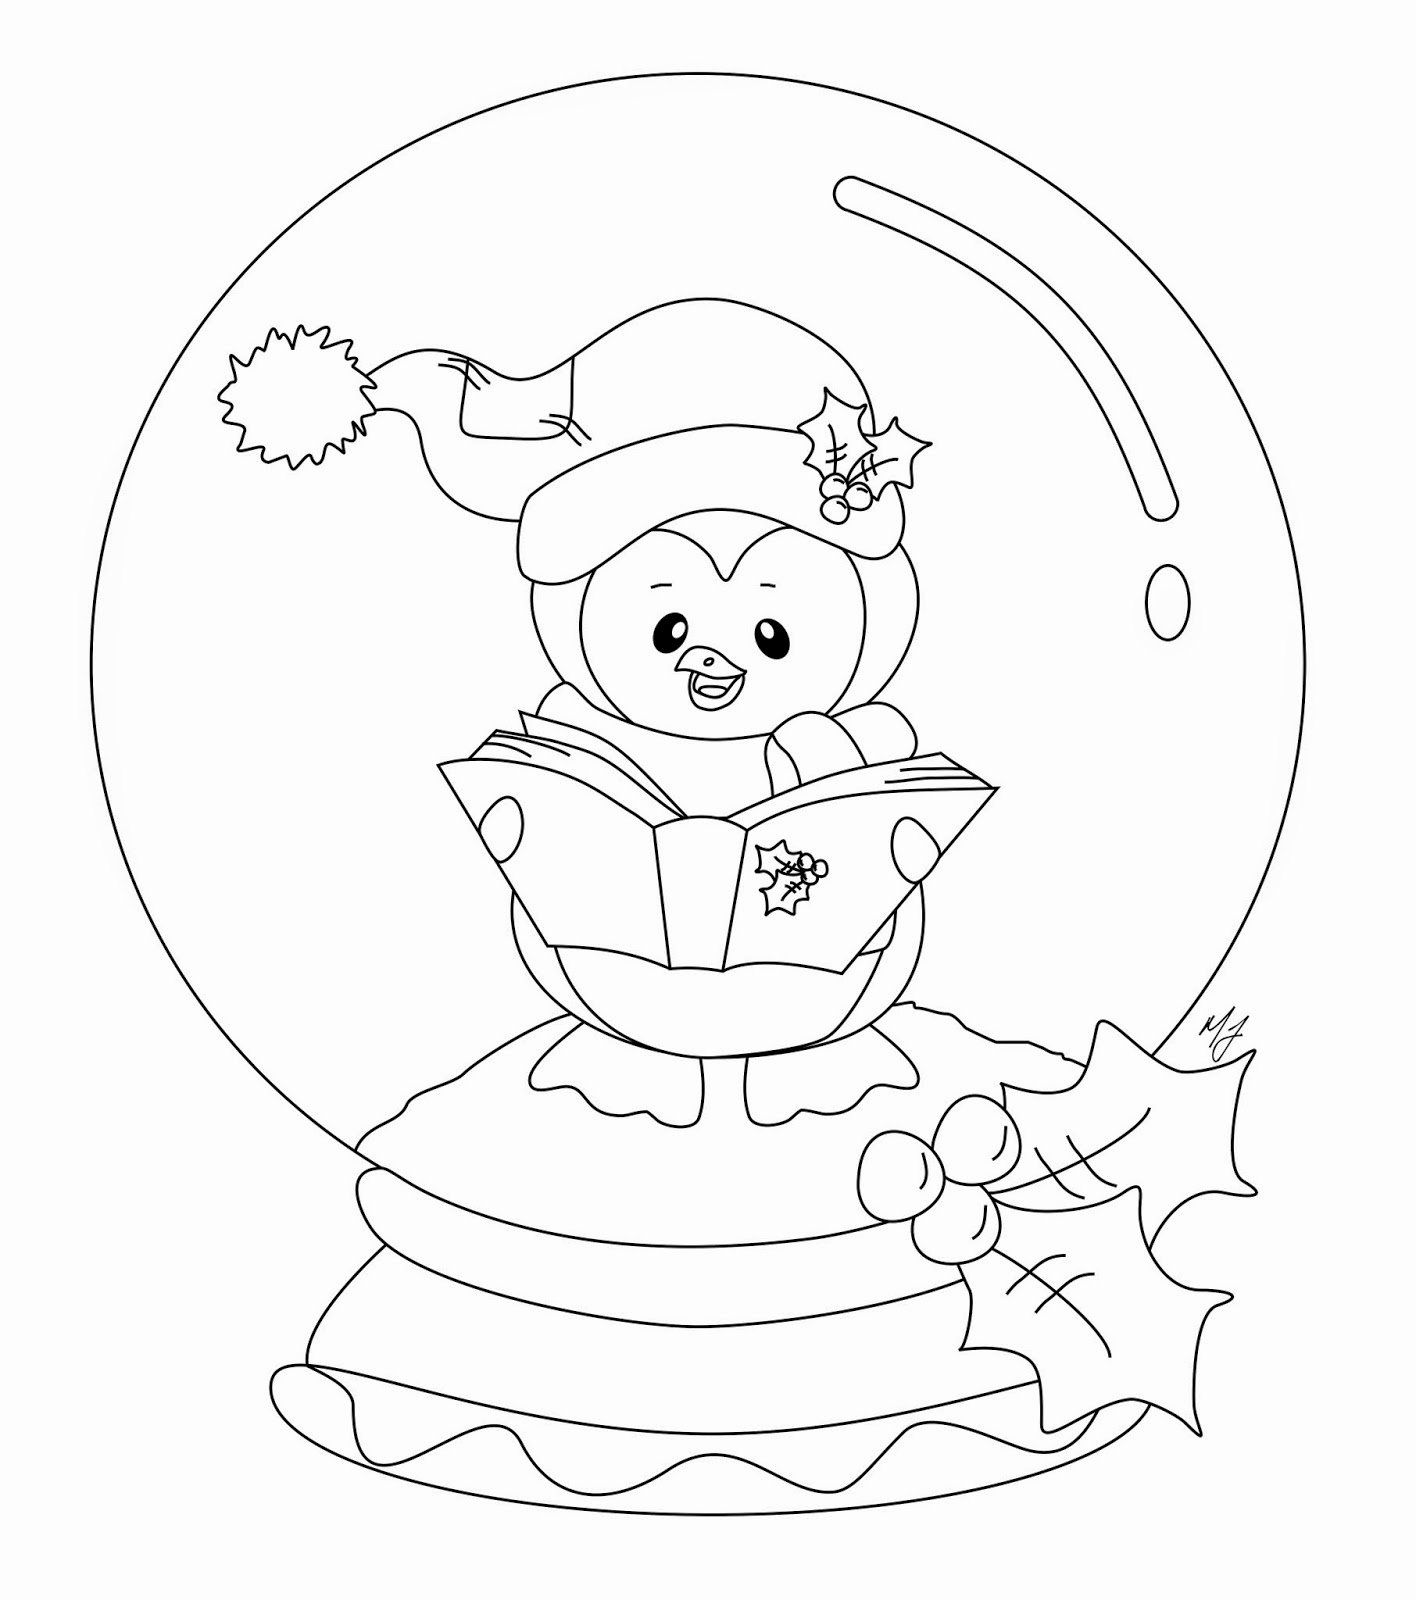 Snow Globe Coloring Page Unique Christmas Snow Globes Coloring Pages Sketch Coloring Page In 2020 Coloring Pages Penguin Coloring Pages Christmas Coloring Pages